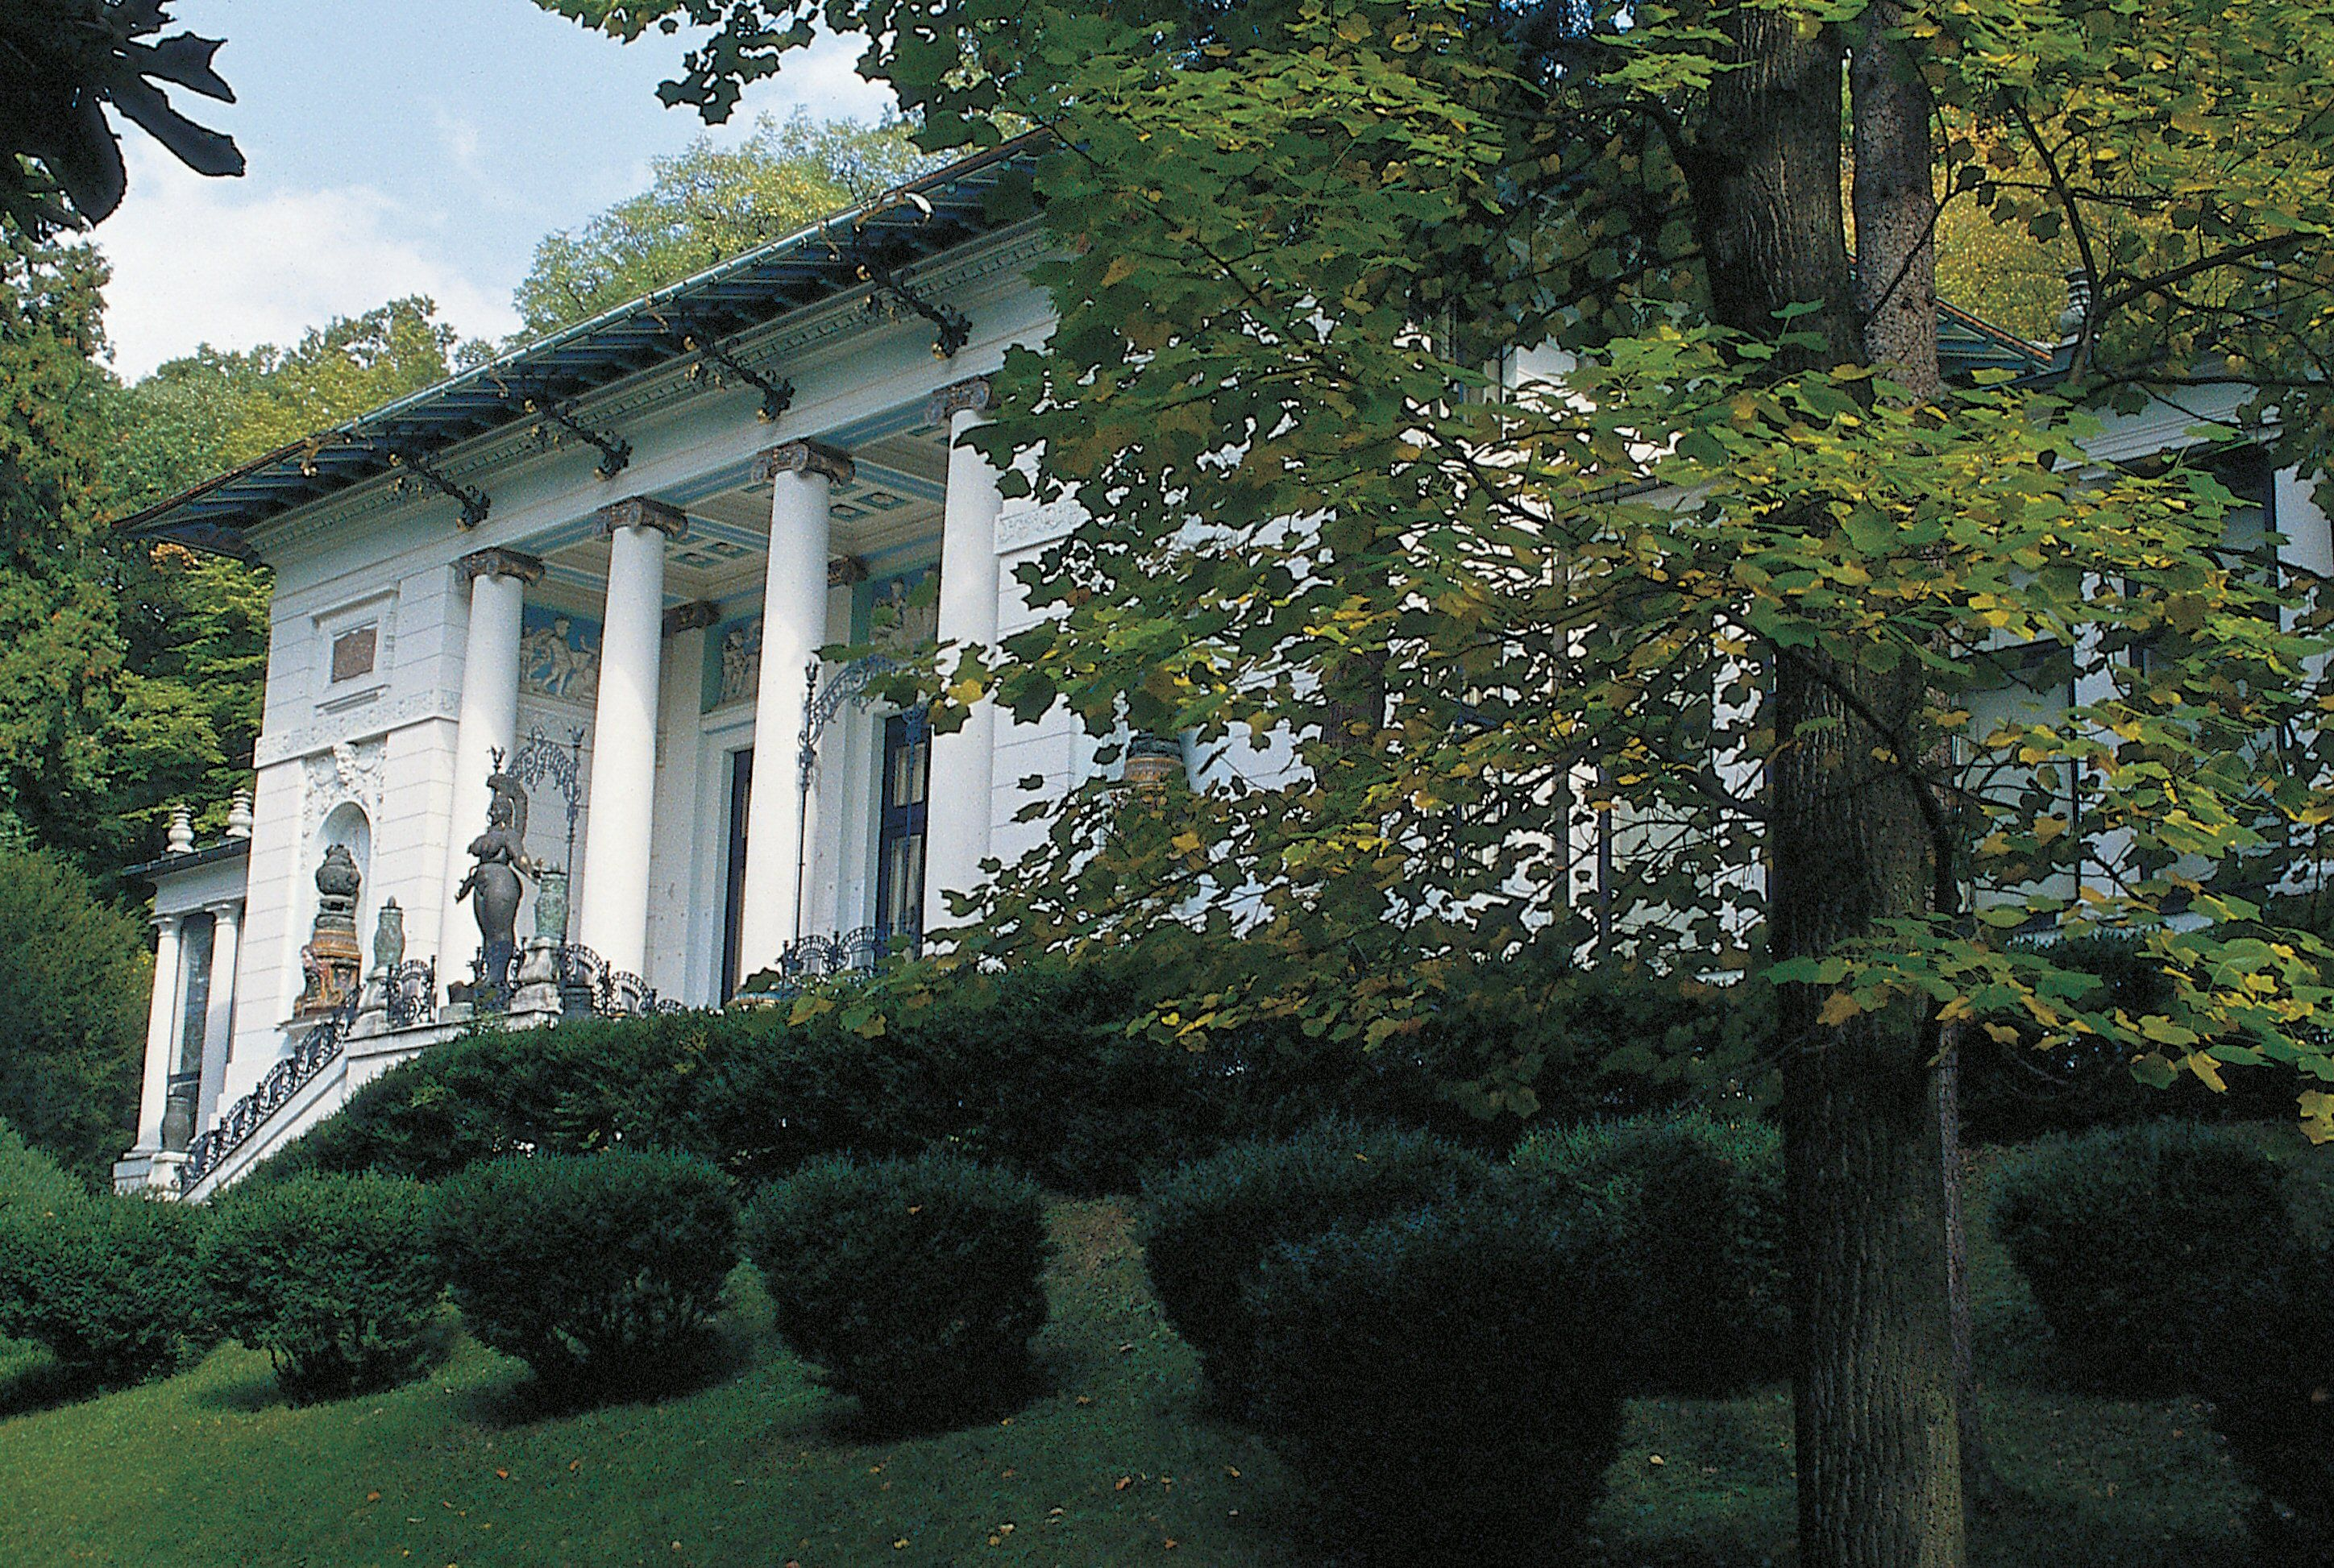 columned white building in wooded landscape